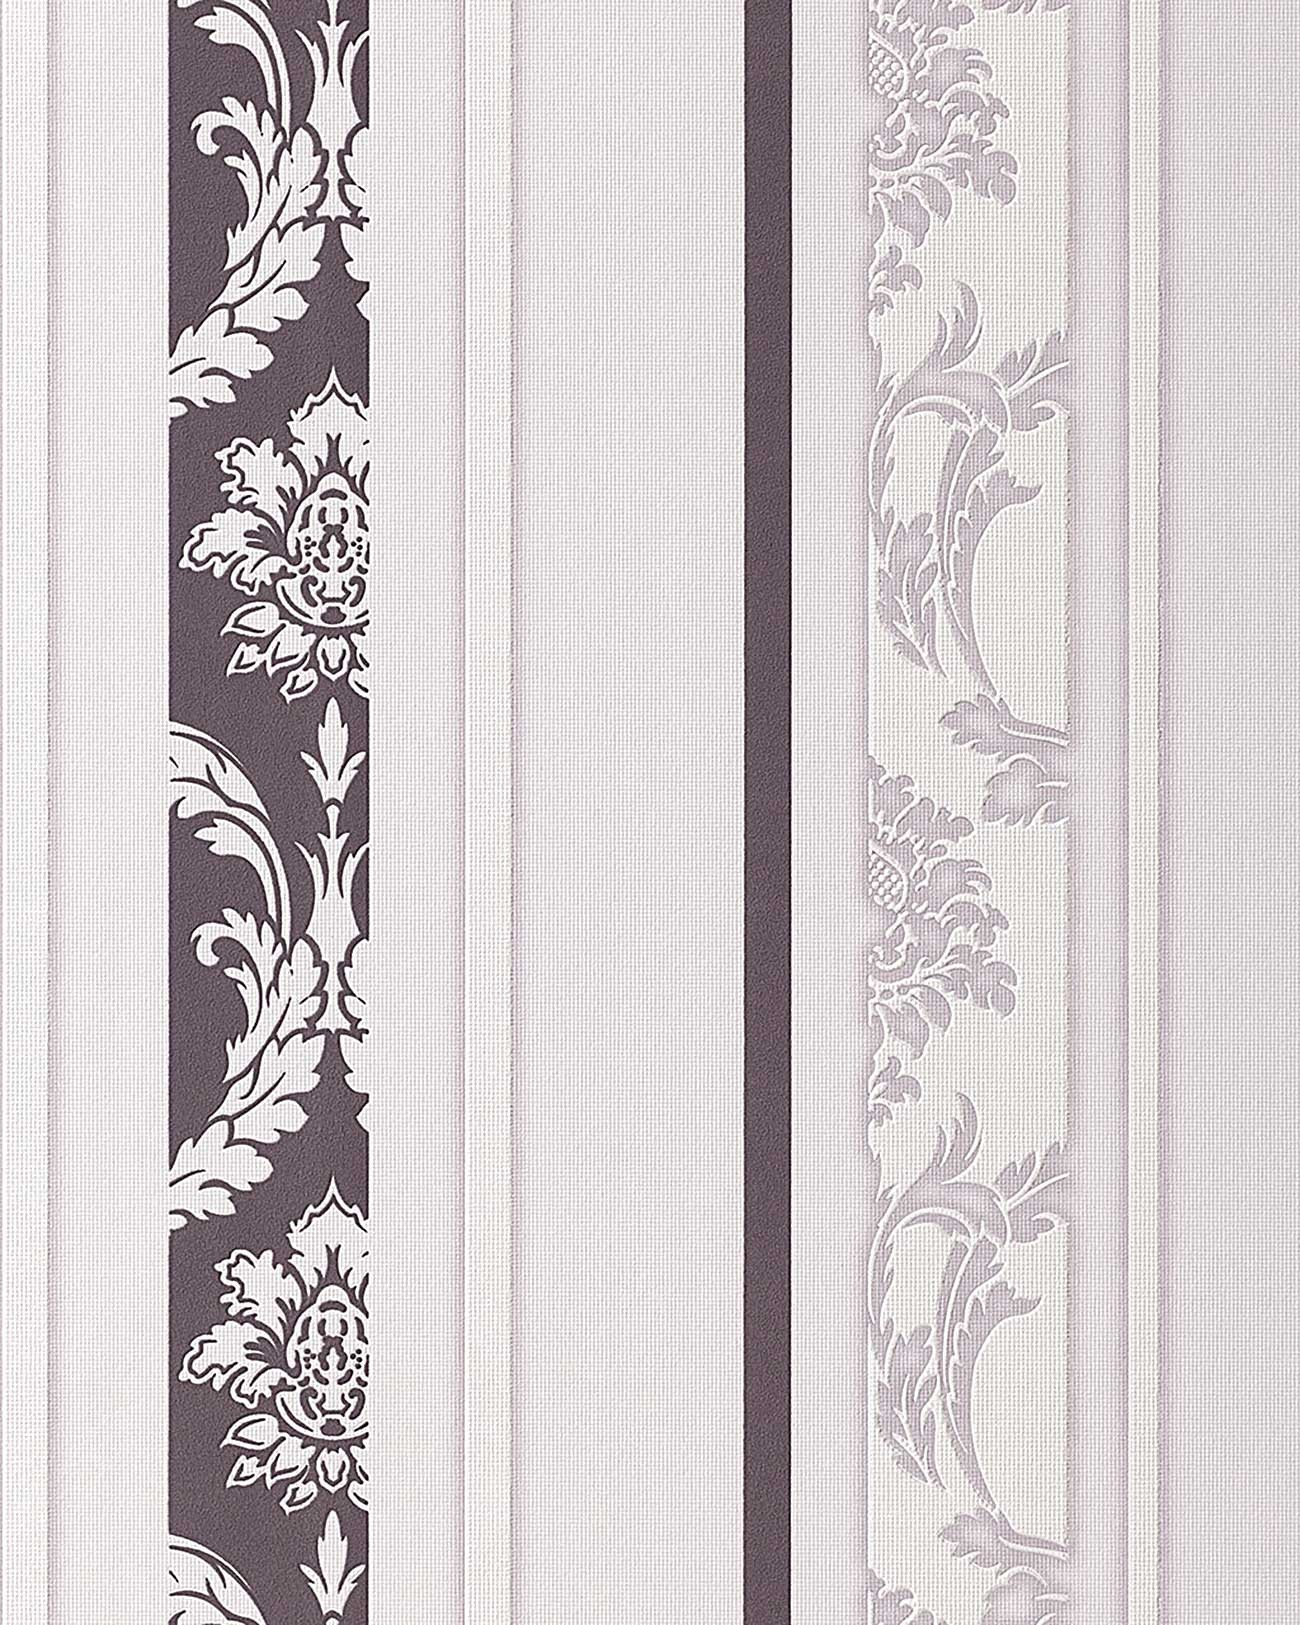 Lila Tapete Weiss Streichen : Lilac and Gray Striped Wall